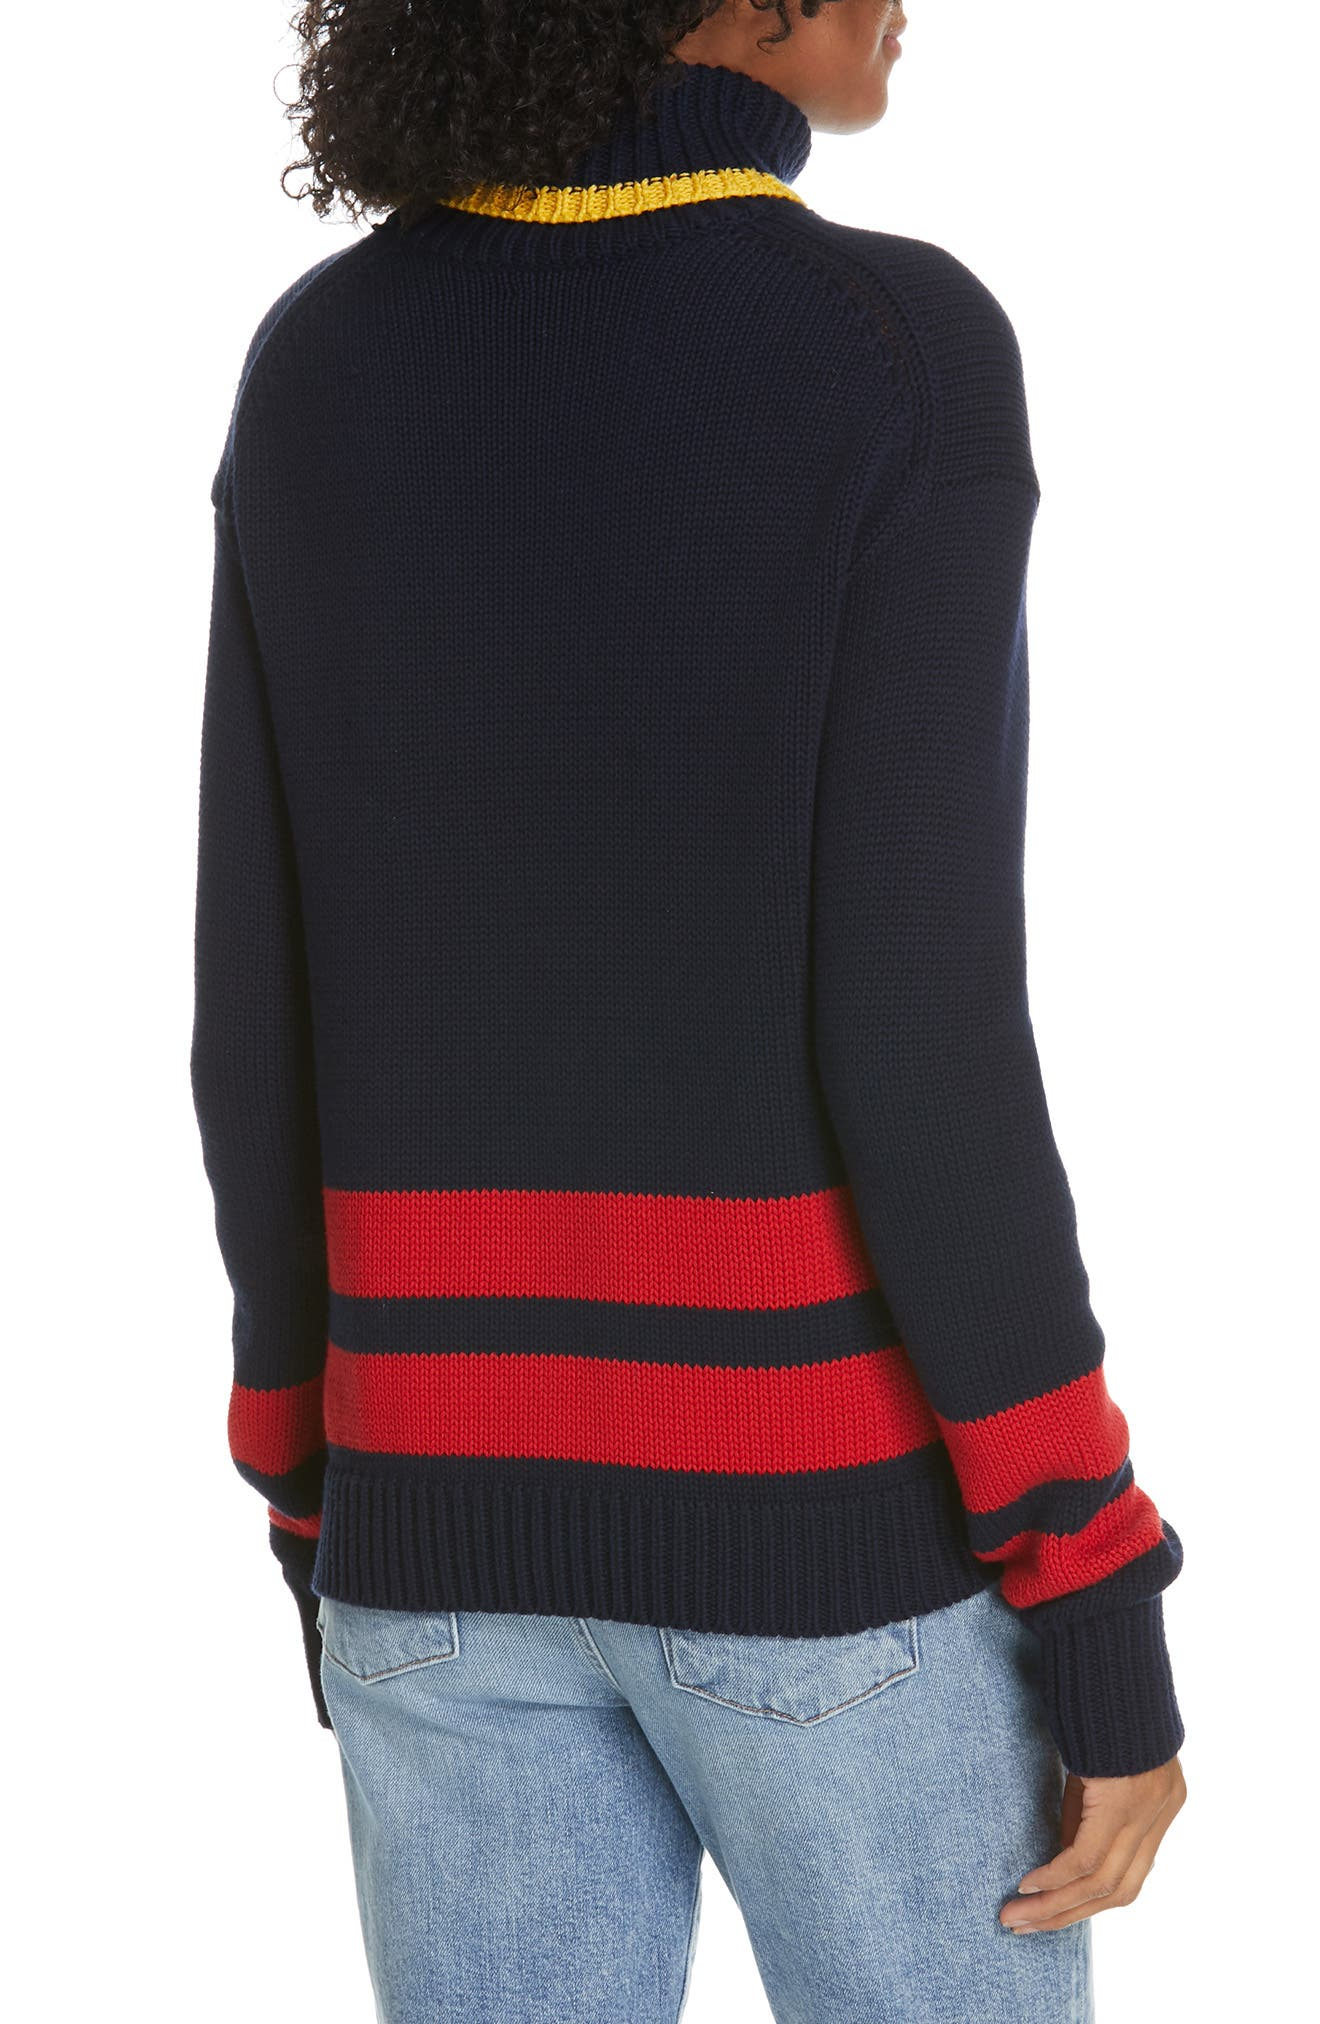 Double Stripe Sweater,                             Alternate thumbnail 2, color,                             NAVY/ RED/ GOLD